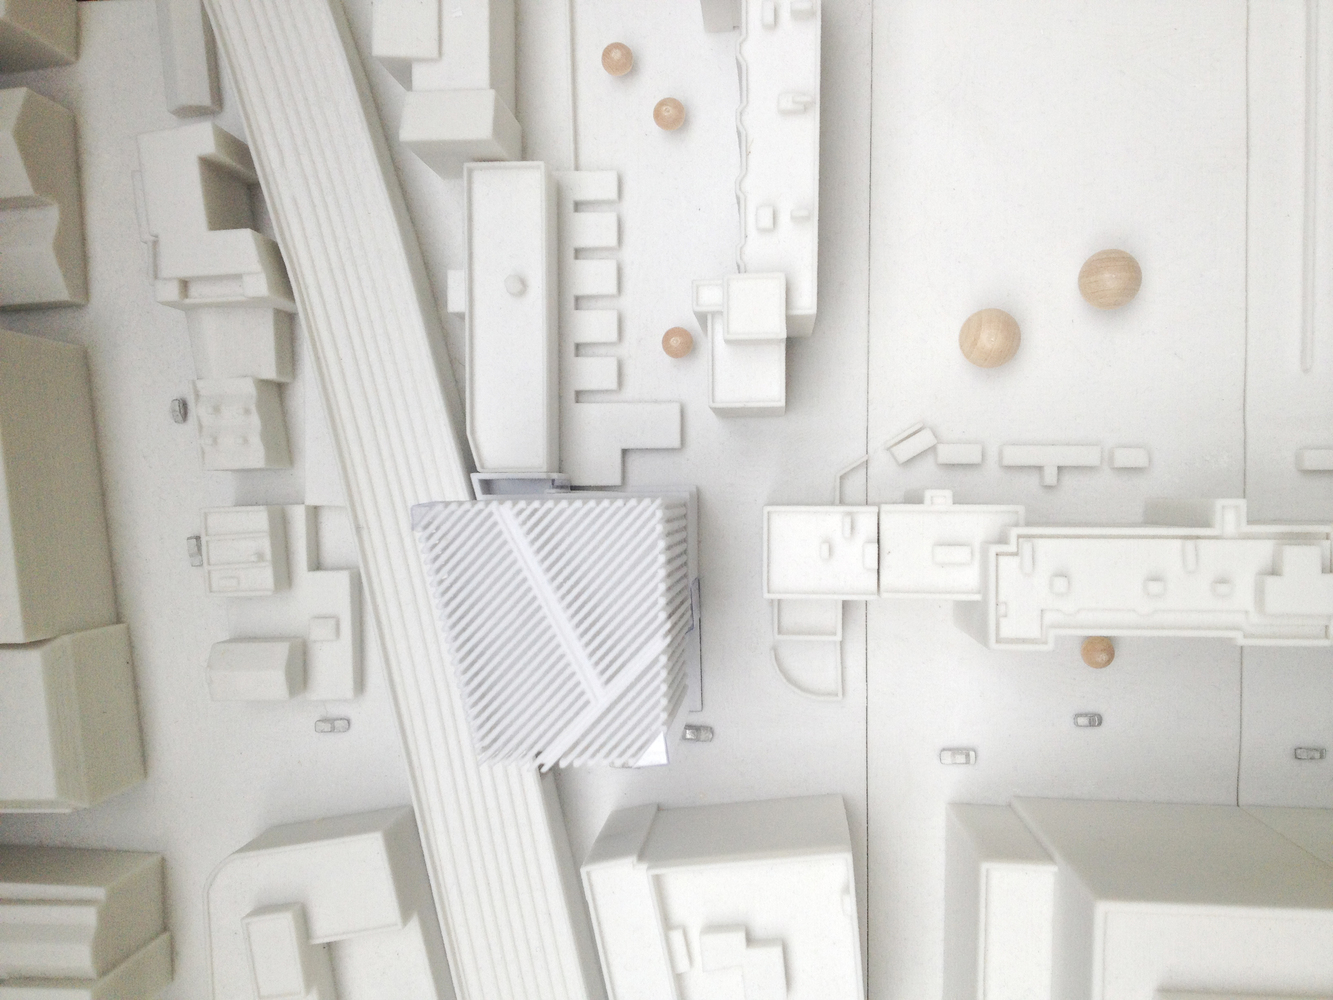 Gallery Of Digital Craft 3d Printing For Architectural Design 2